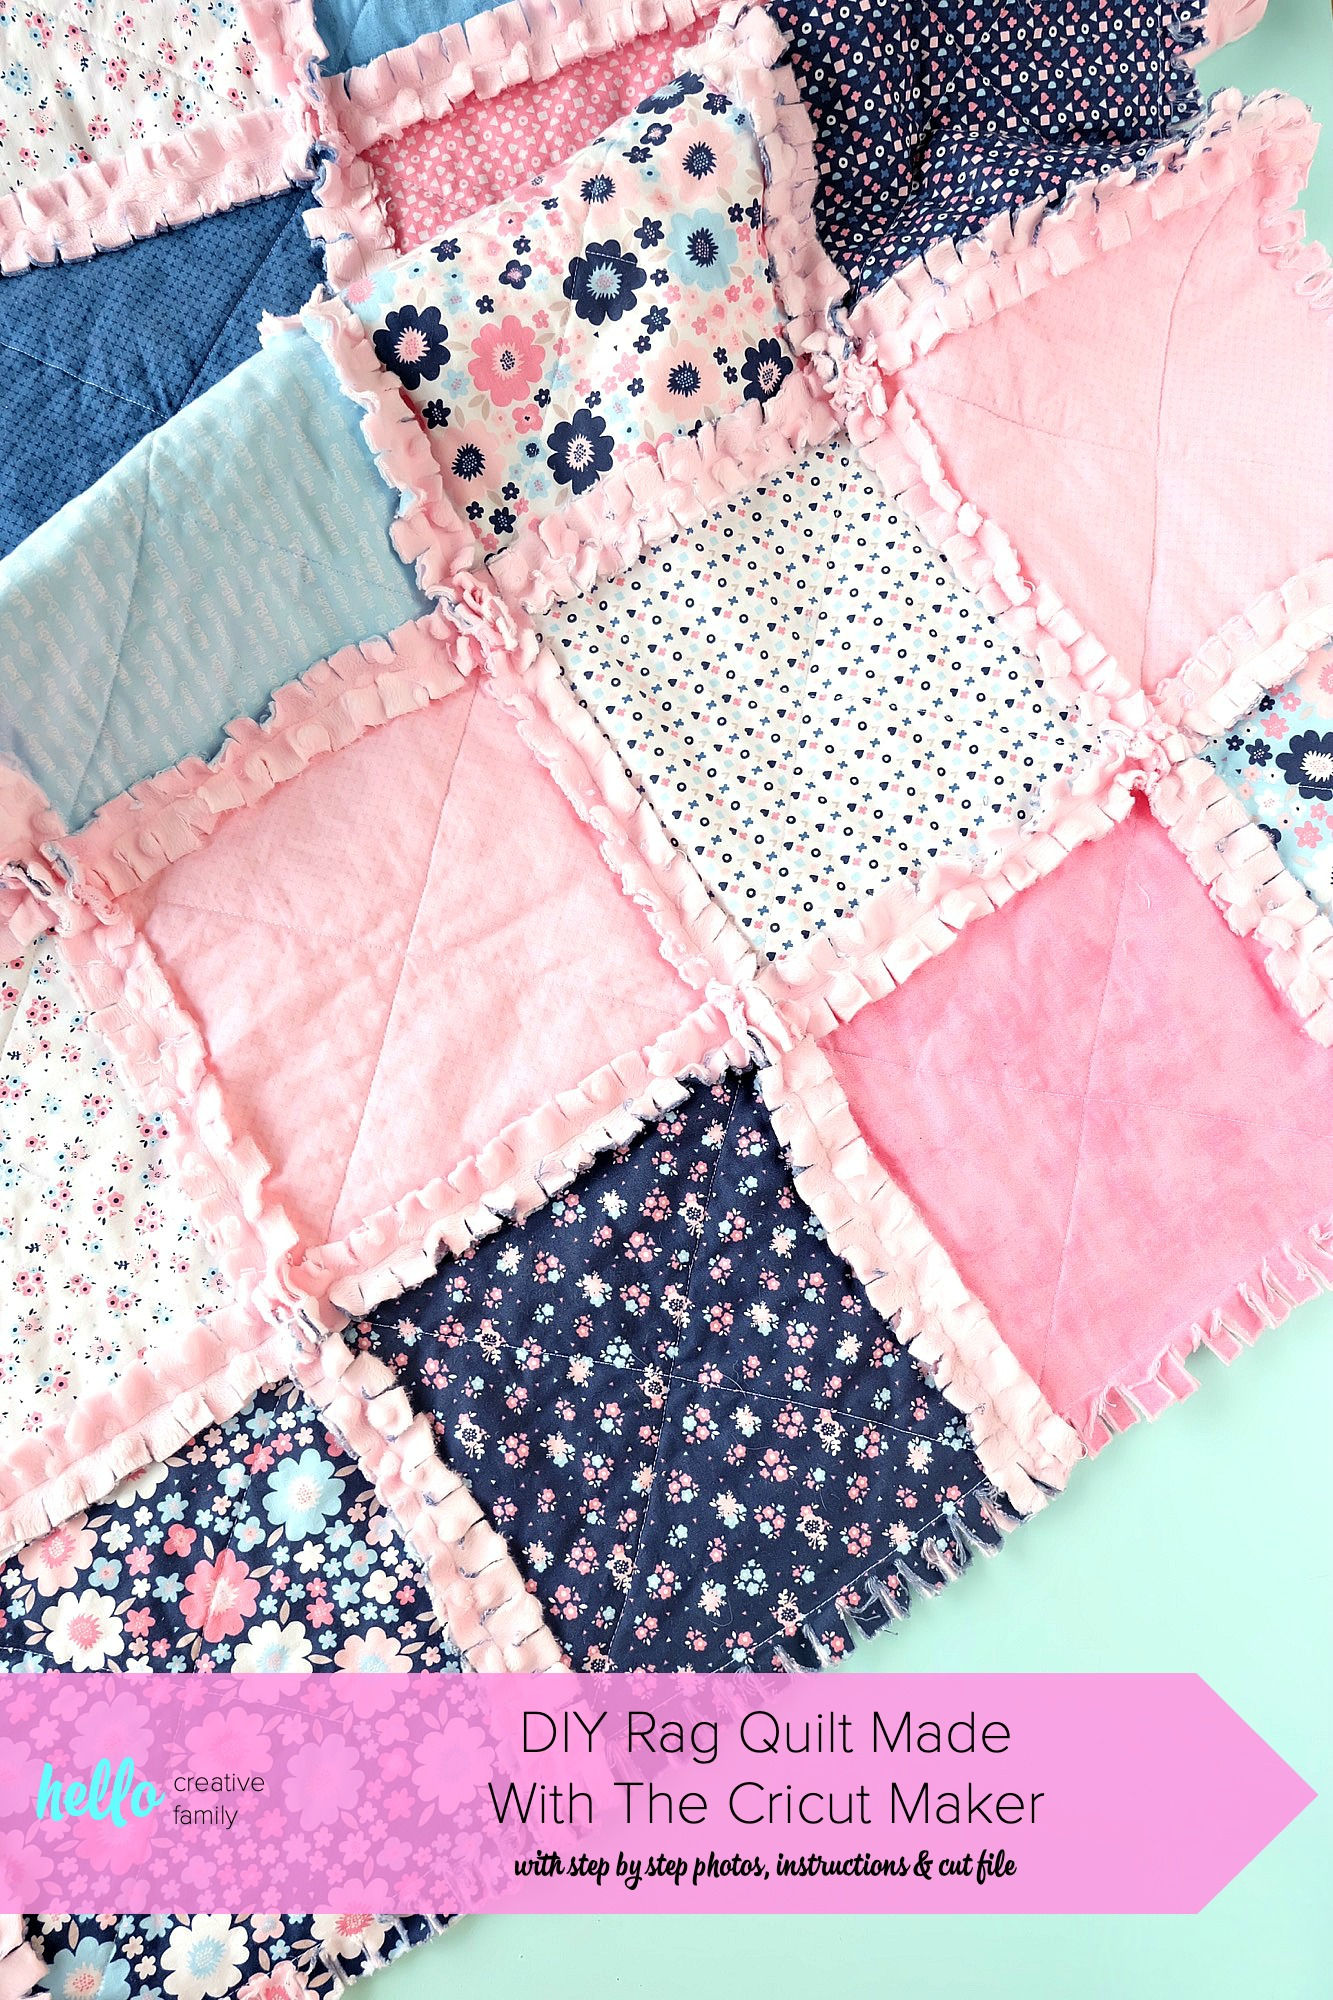 Diy Rag Quilt Made With The Cricut Maker With Step By Step